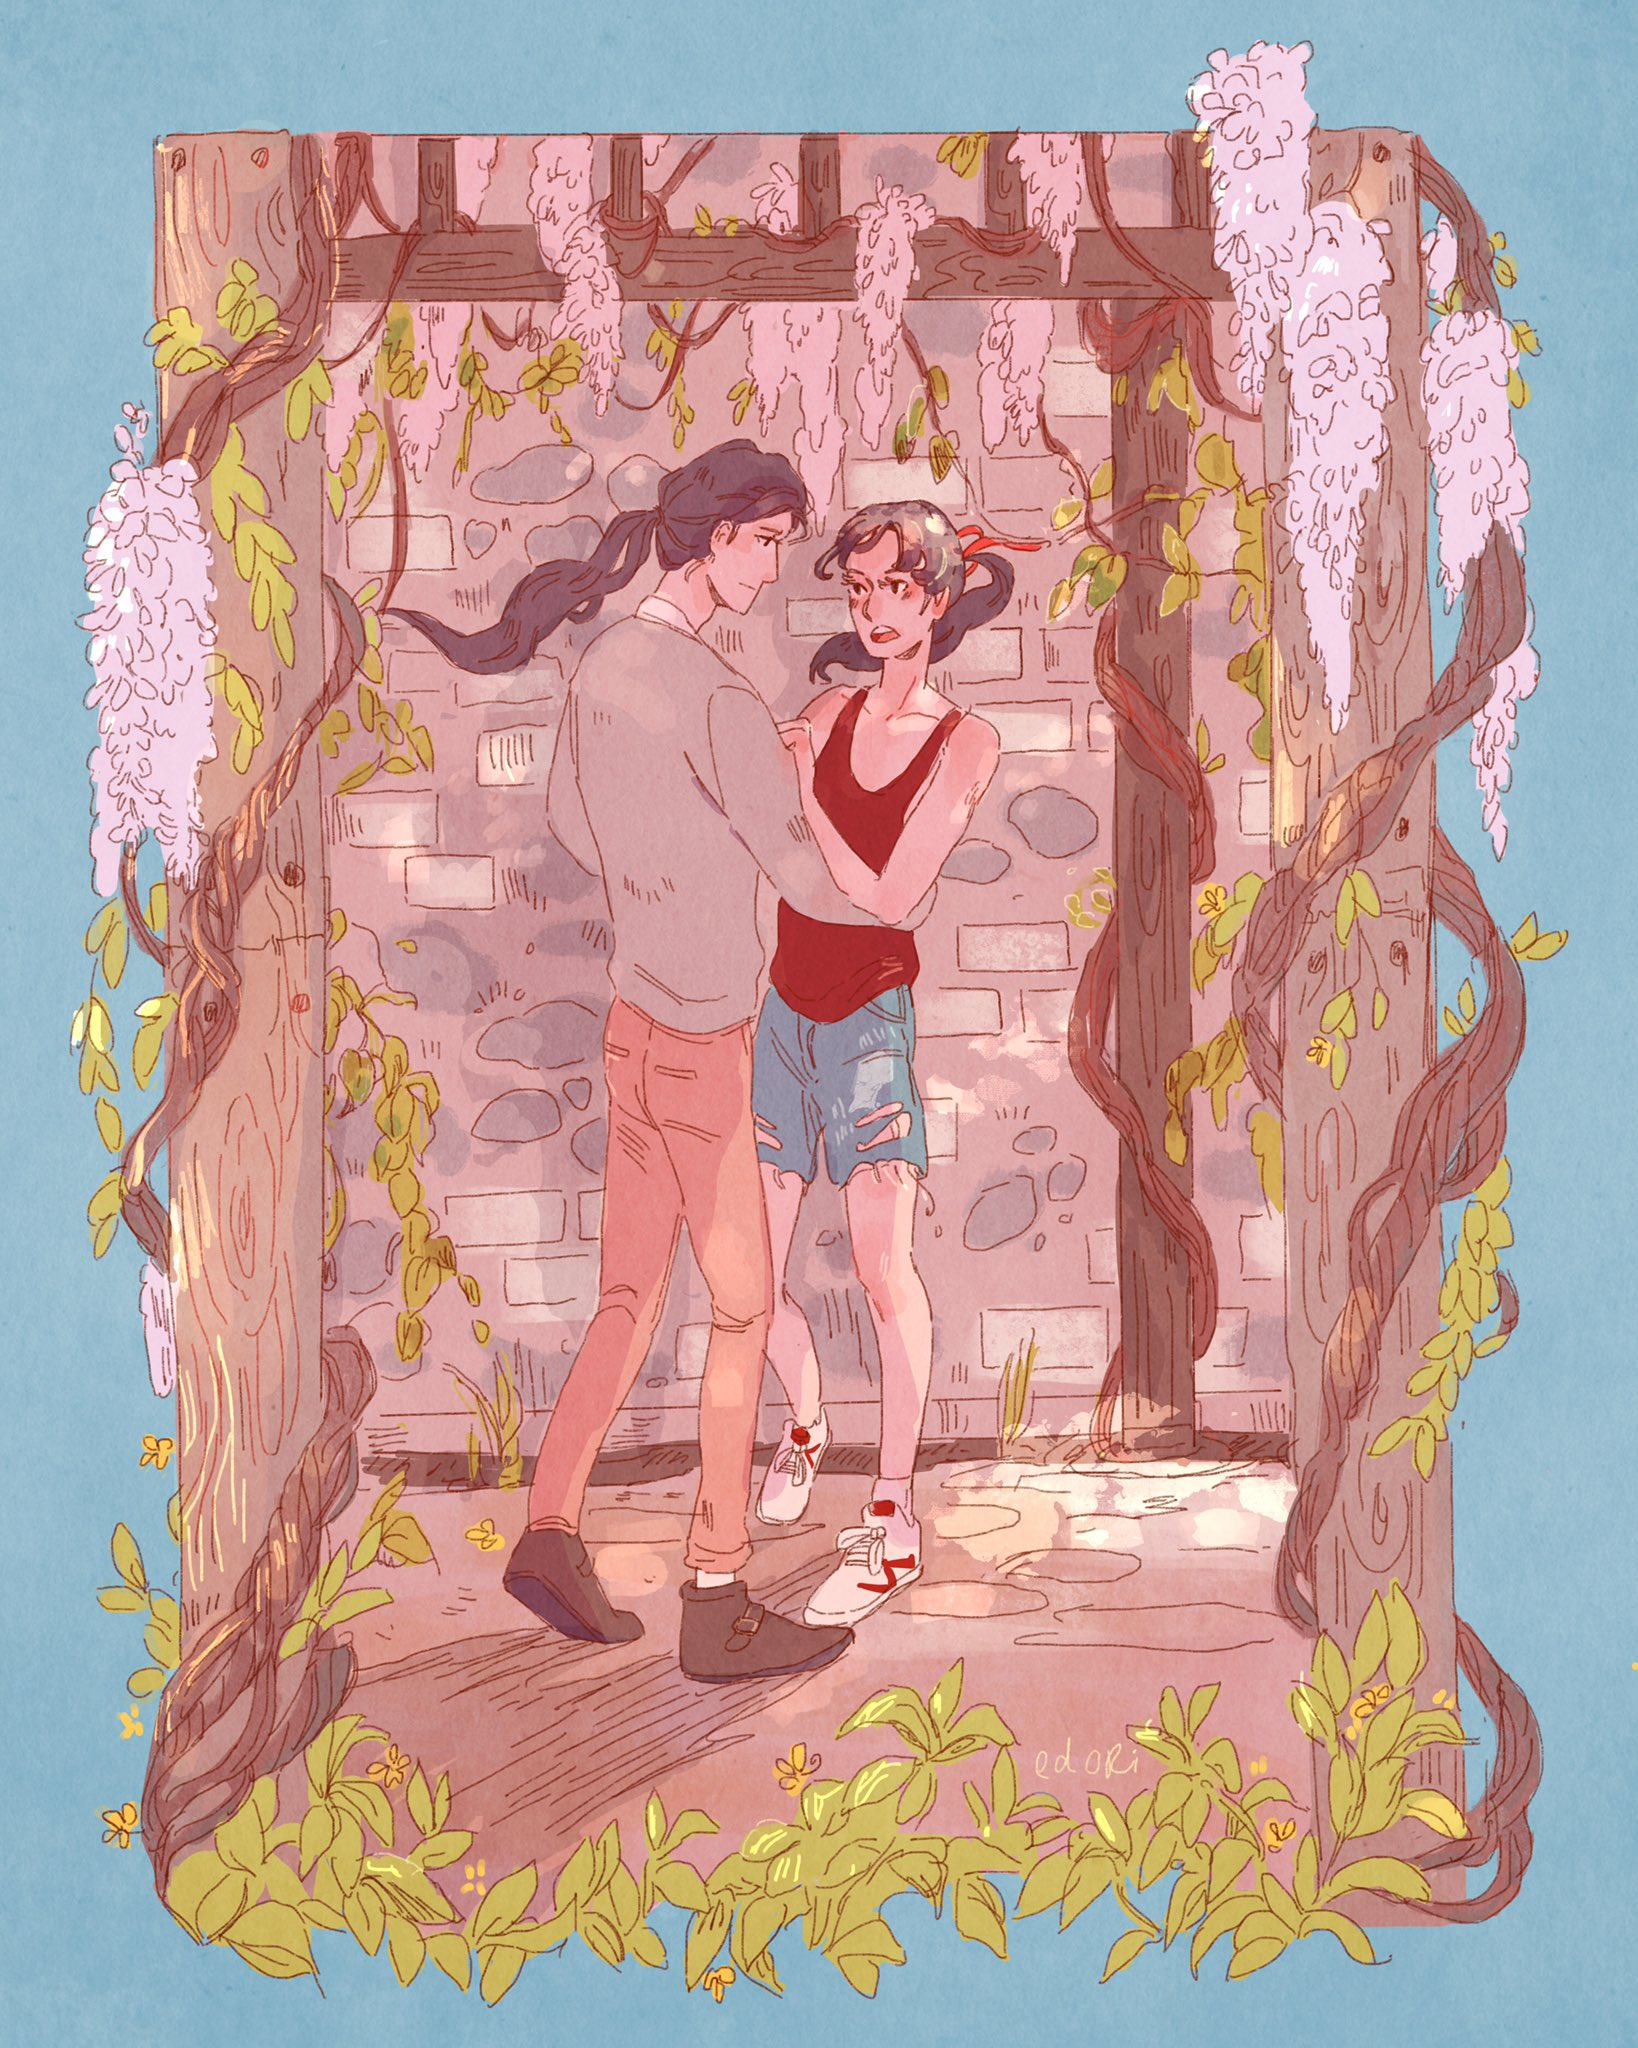 Illustration: Lan Wangji grabs Wei Ying around the waist and swings him toward the wall of the alleyway, surrounded by wisteria and sunlight.